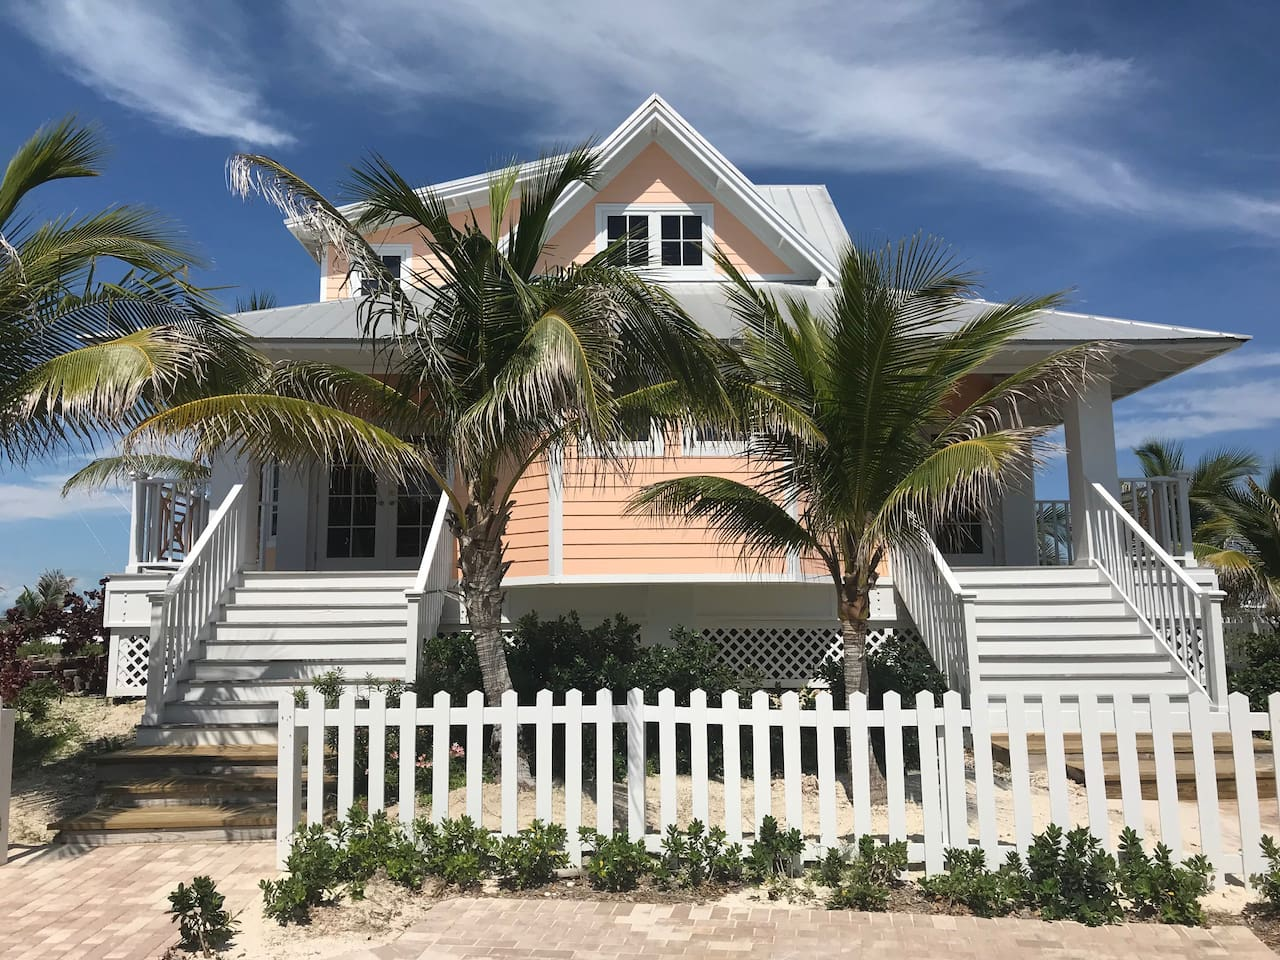 Welcome to your island home, the Peach Villa at Chub Cay Resort & Marina! Featuring 3 bedrooms, 3.5 bathrooms, living, dining, and kitchen space, you will have all the comforts of home during your island getaway.